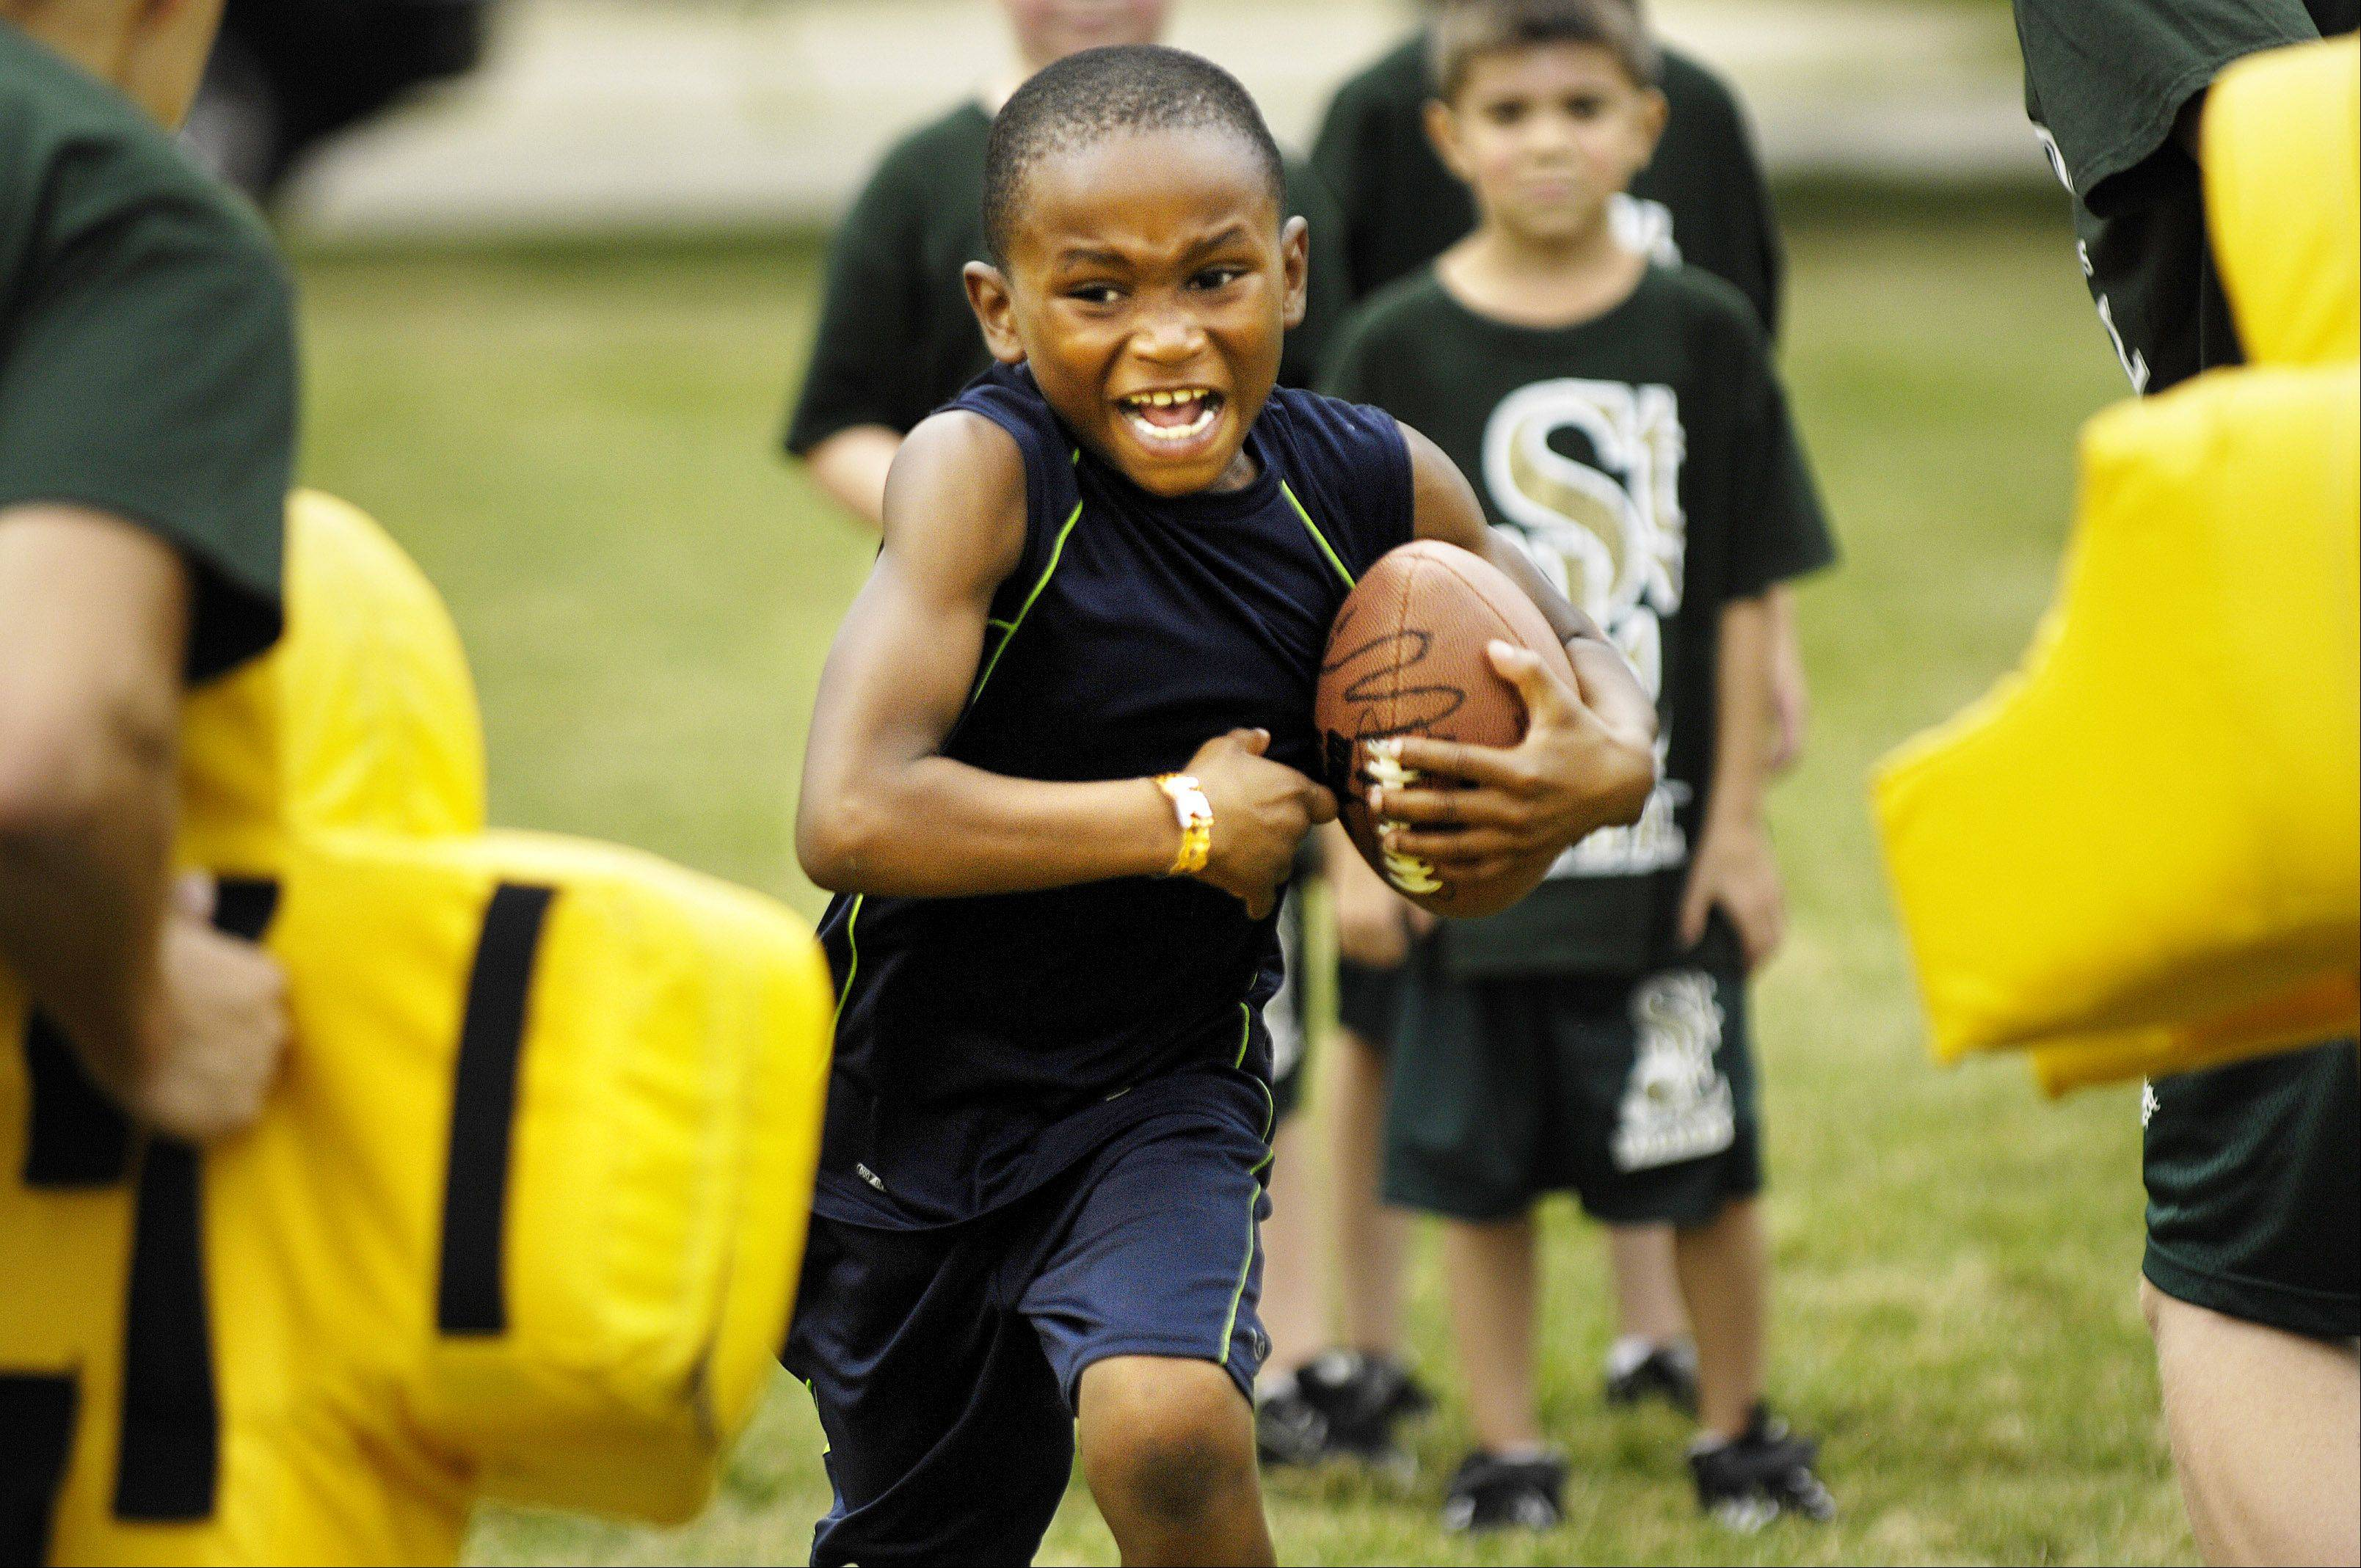 Seven-year-old Jordan Nubin shows no fear as he charges through the defense at a St. Edward Catholic High School football camp for youth Thursday at Abbott Field in Elgin. First through eighth graders were coached through drills by the high school coaching staff and the football team players.